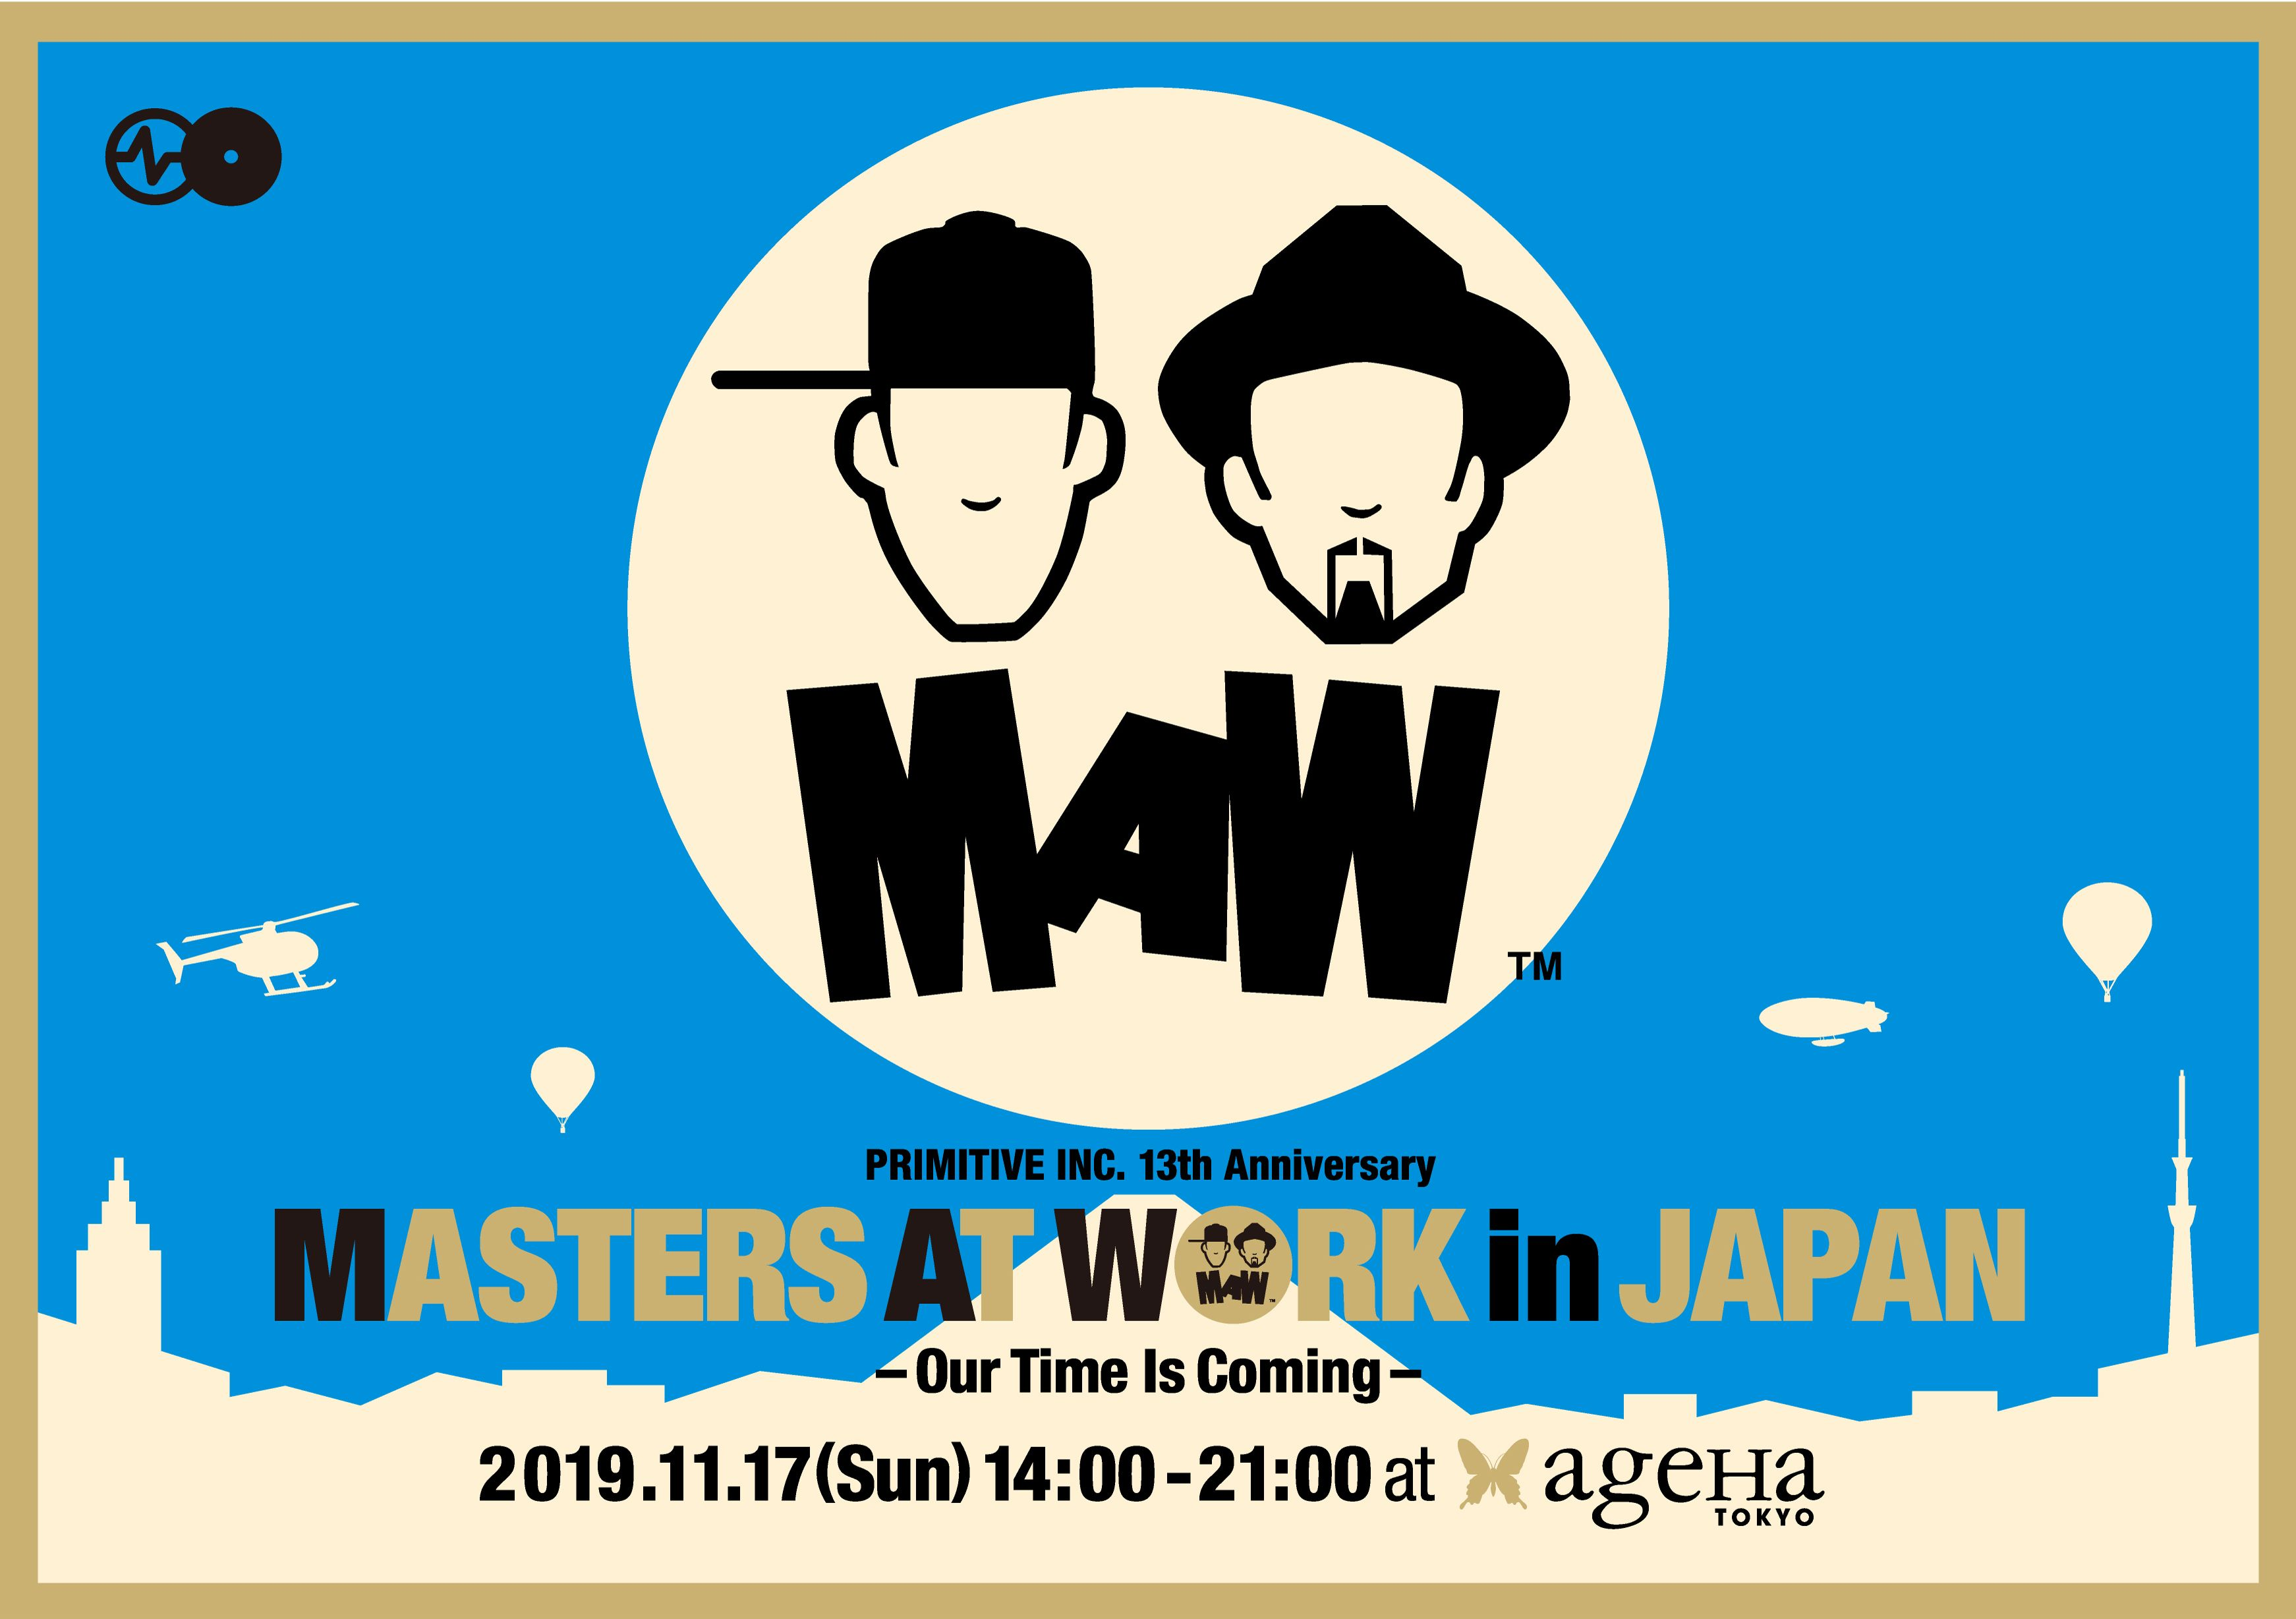 PRIMITIVE INC. 13th Anniversary  MASTERS AT WORK in JAPAN – Our Time Is Coming –